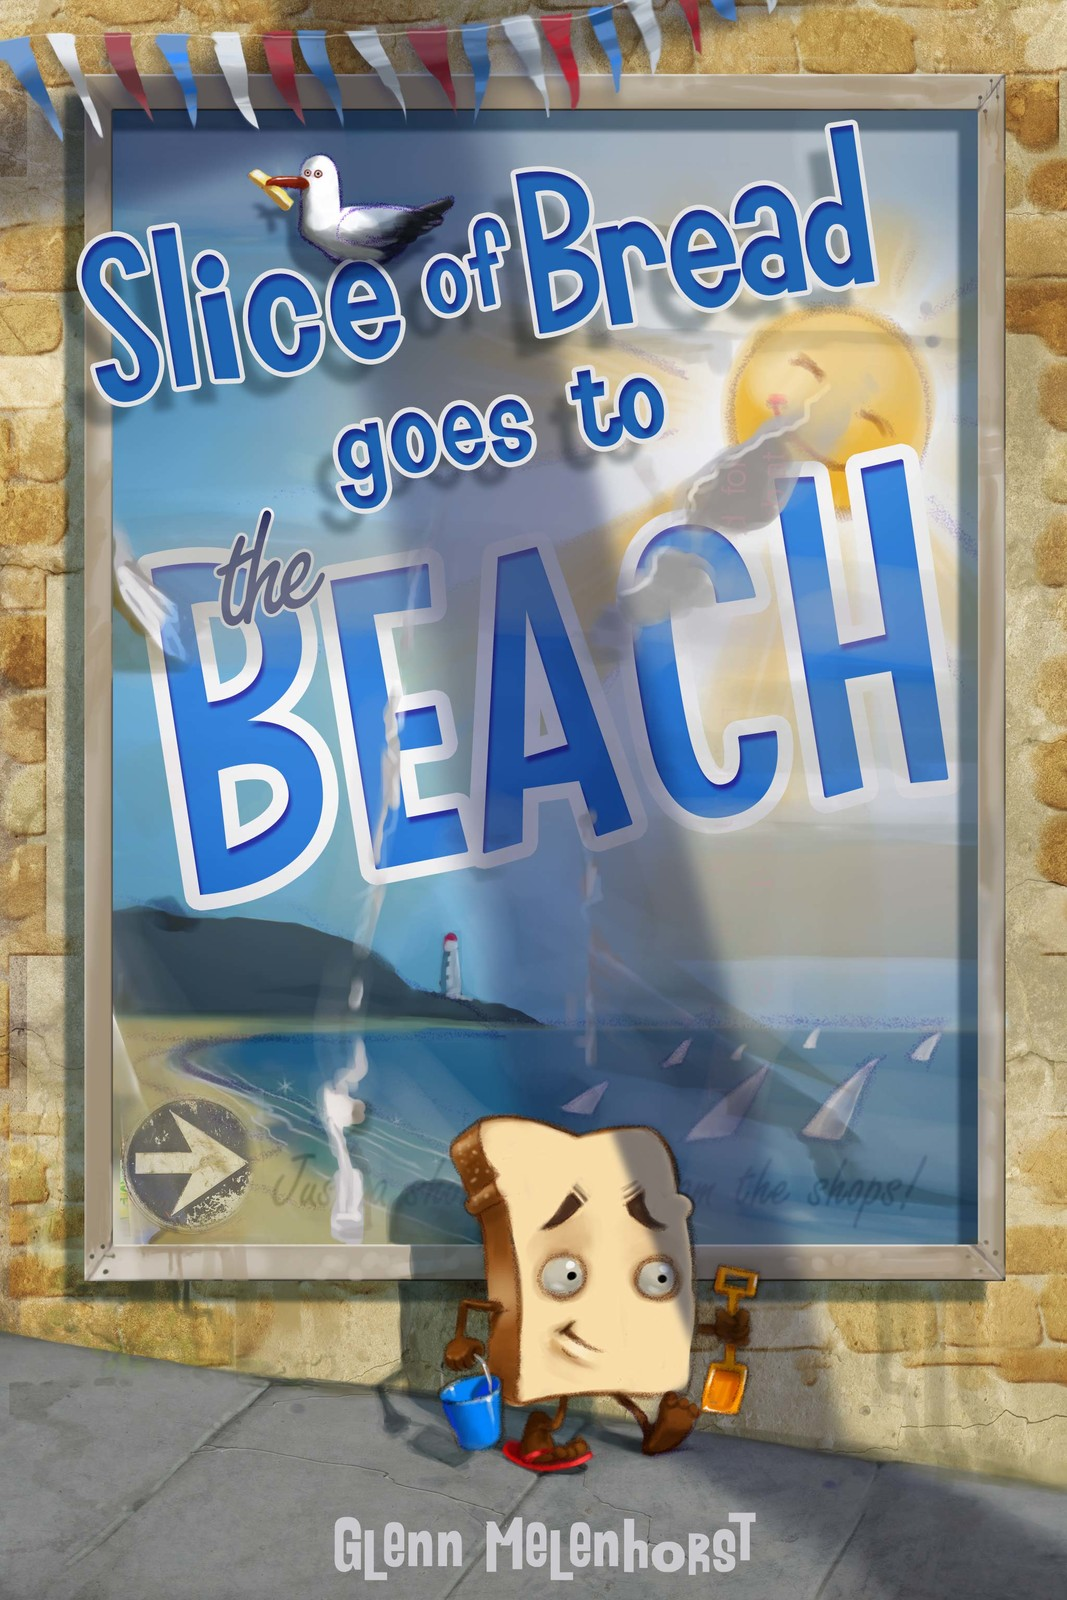 Slice of bread goes to the Beach. Title